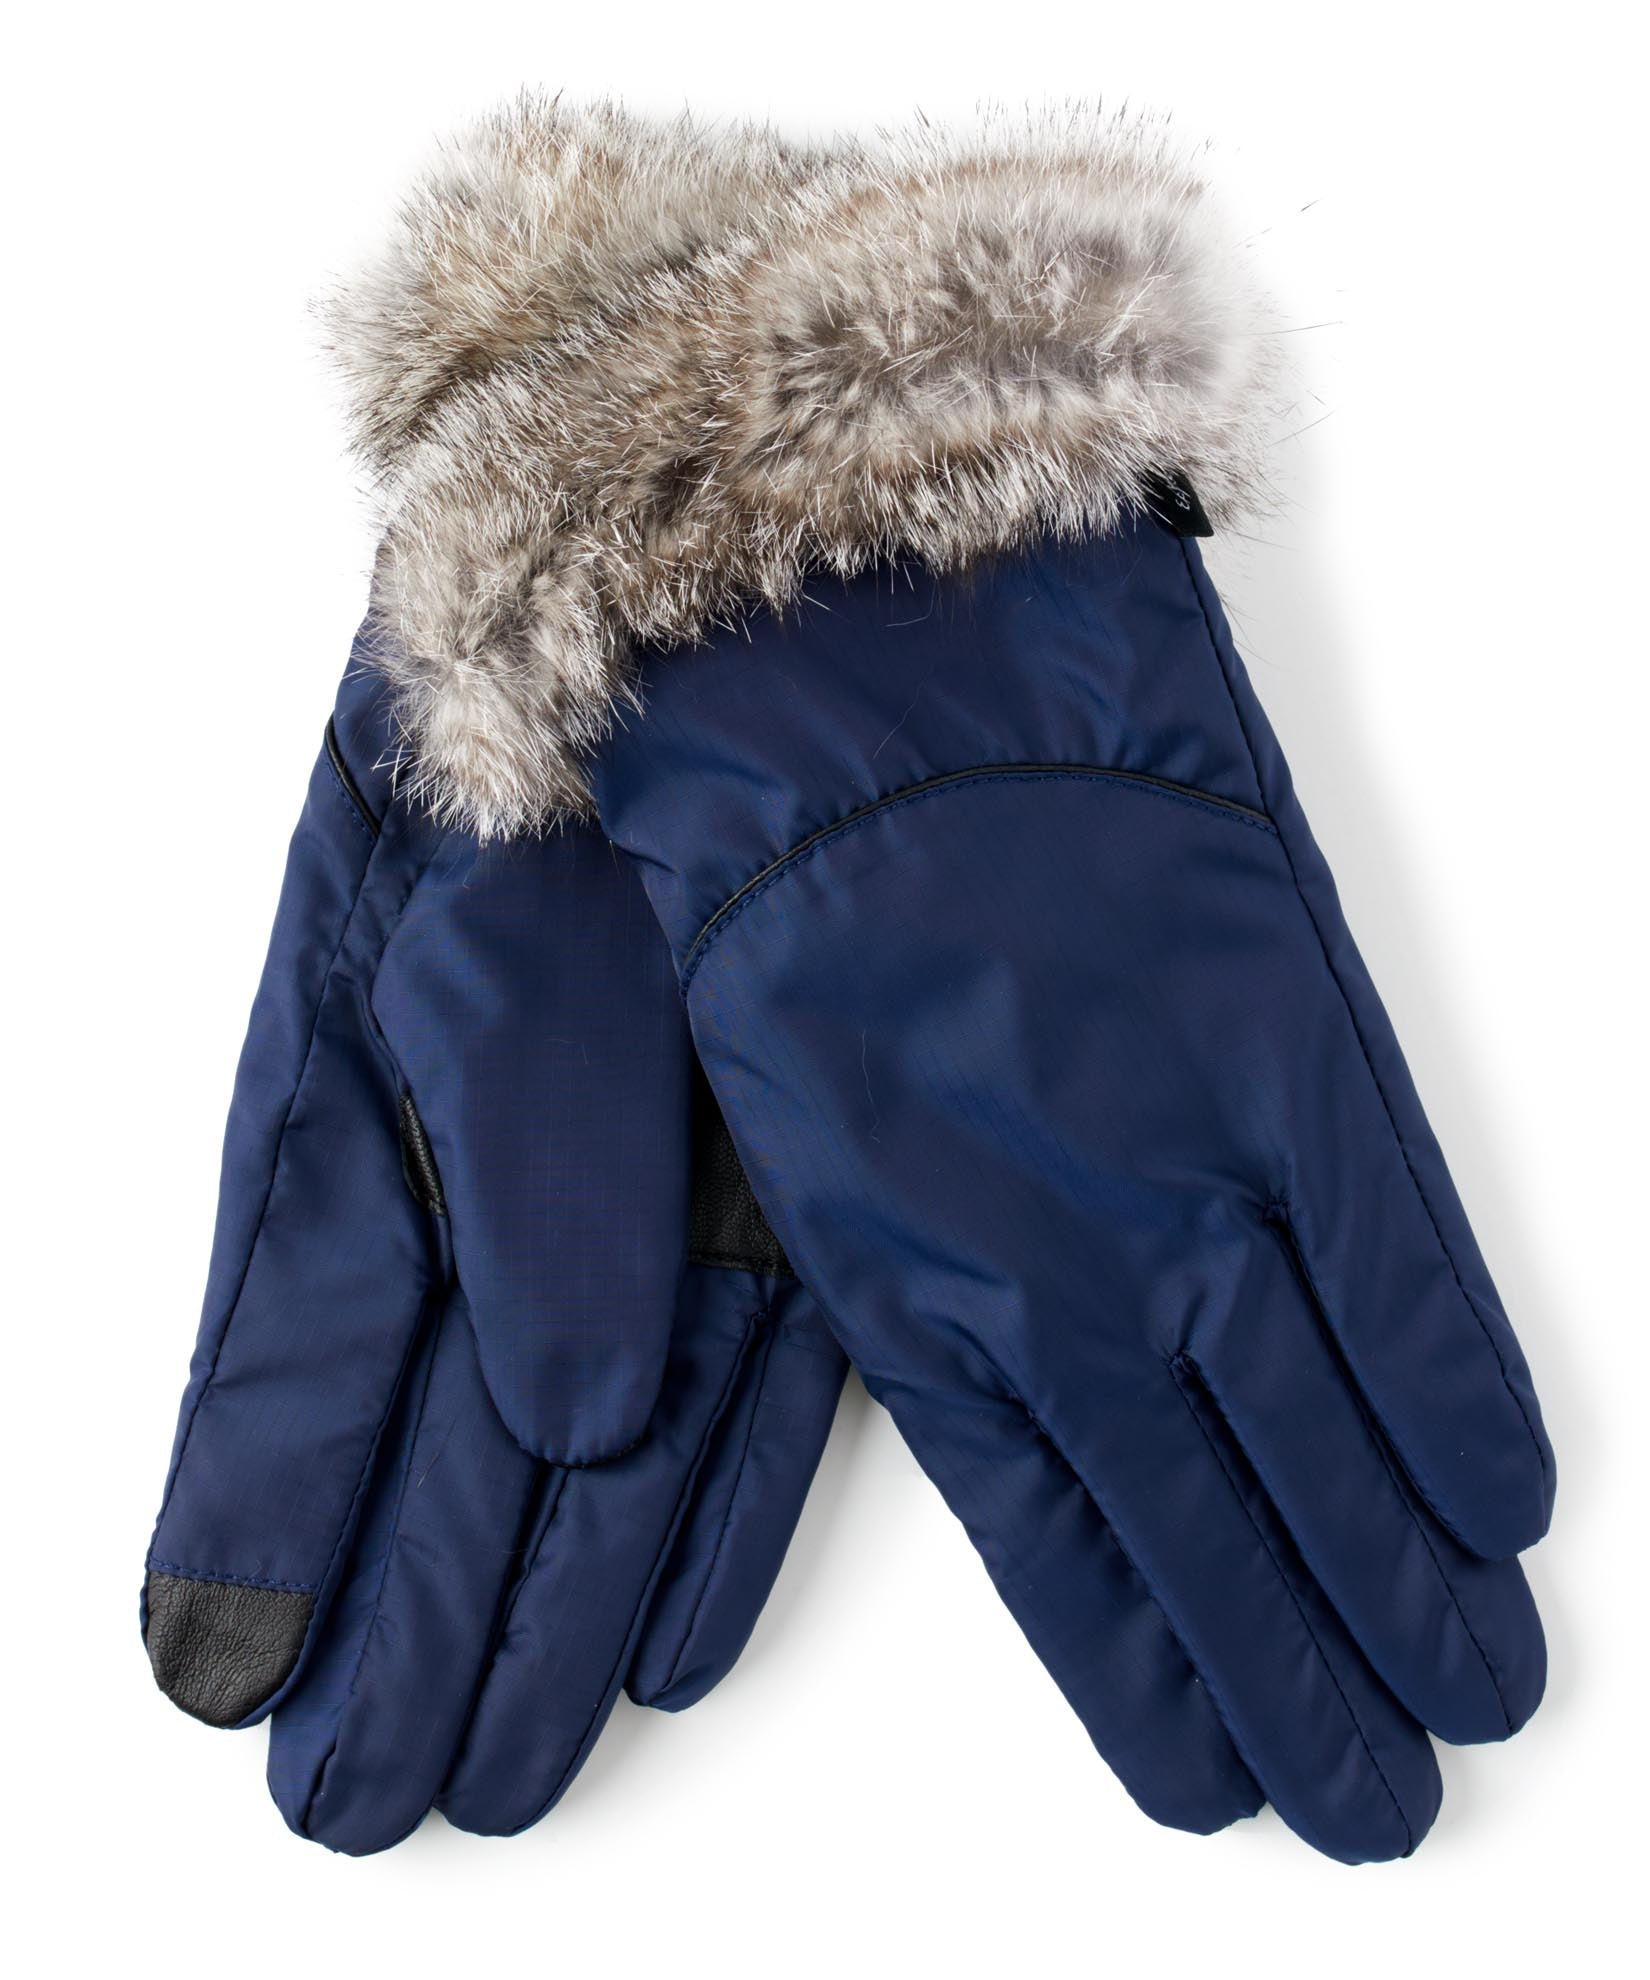 Maritime Navy - Mountain Glove Rabbit Fur Cuff